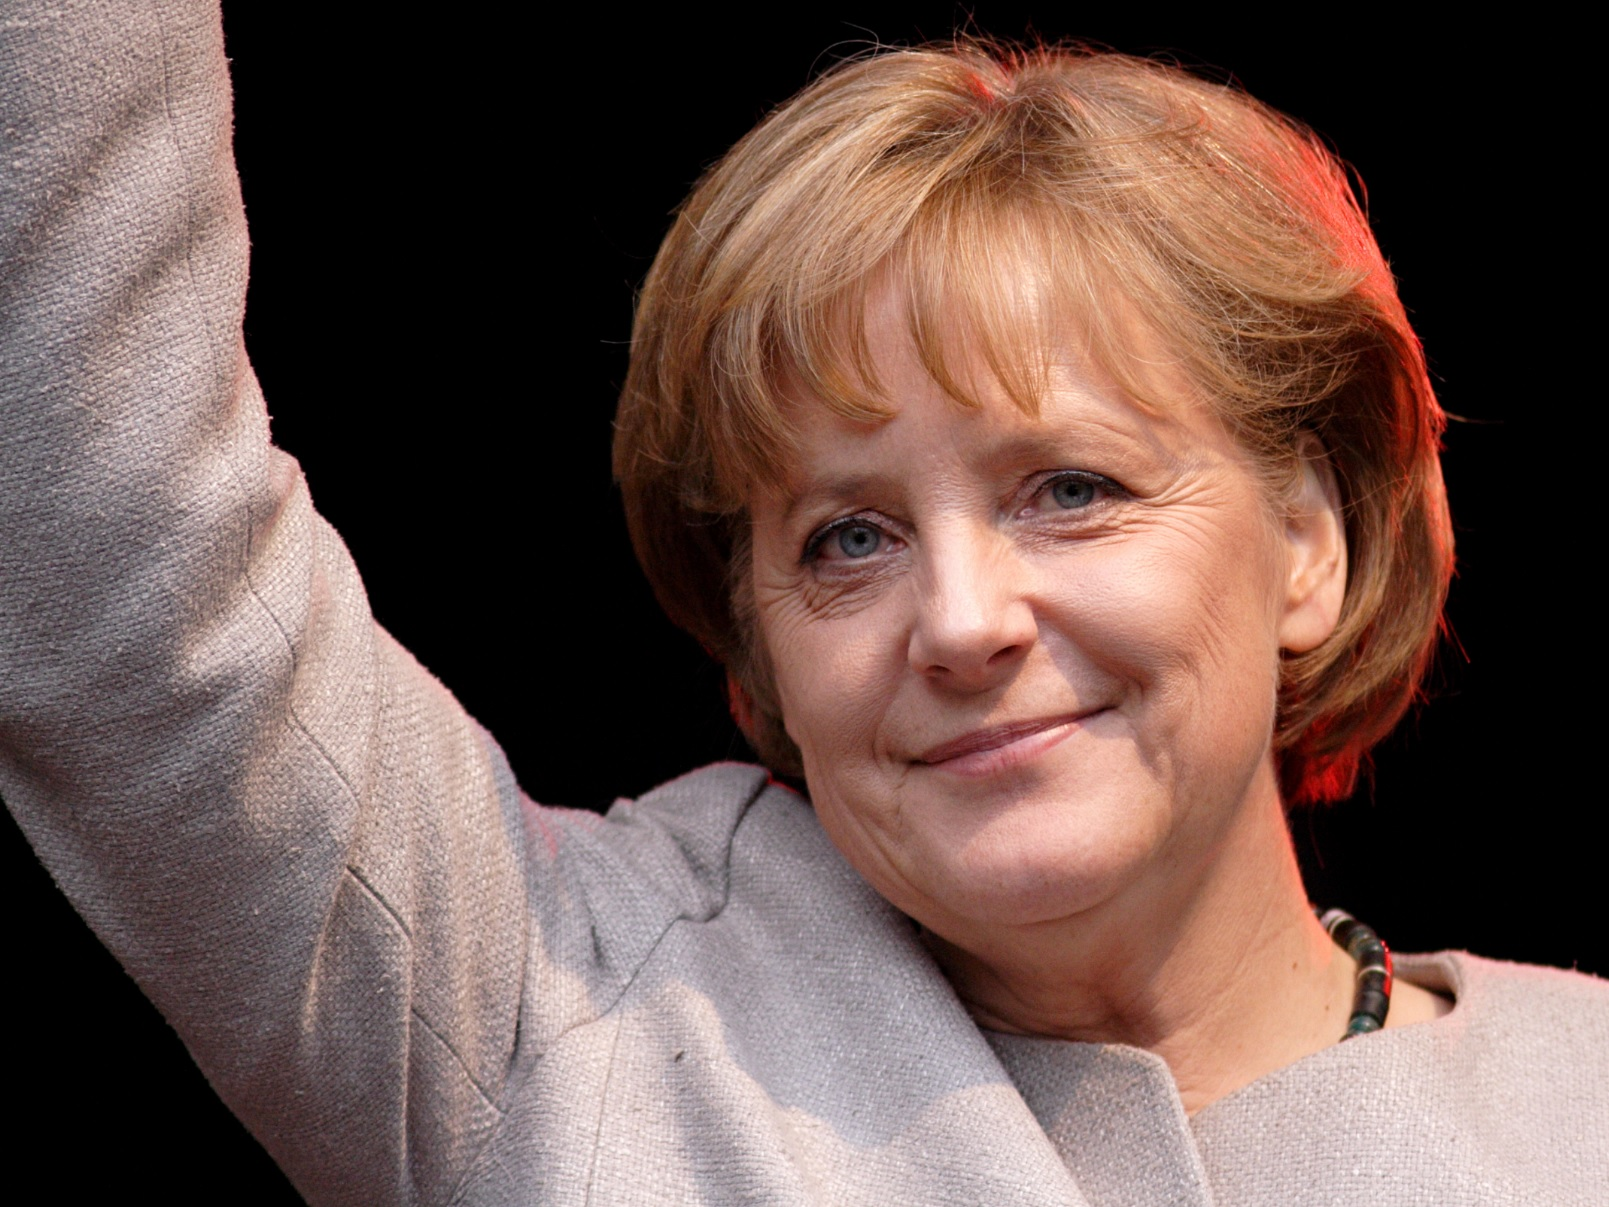 German Chancellor Angela Merkel. Credit: Econotimes.com